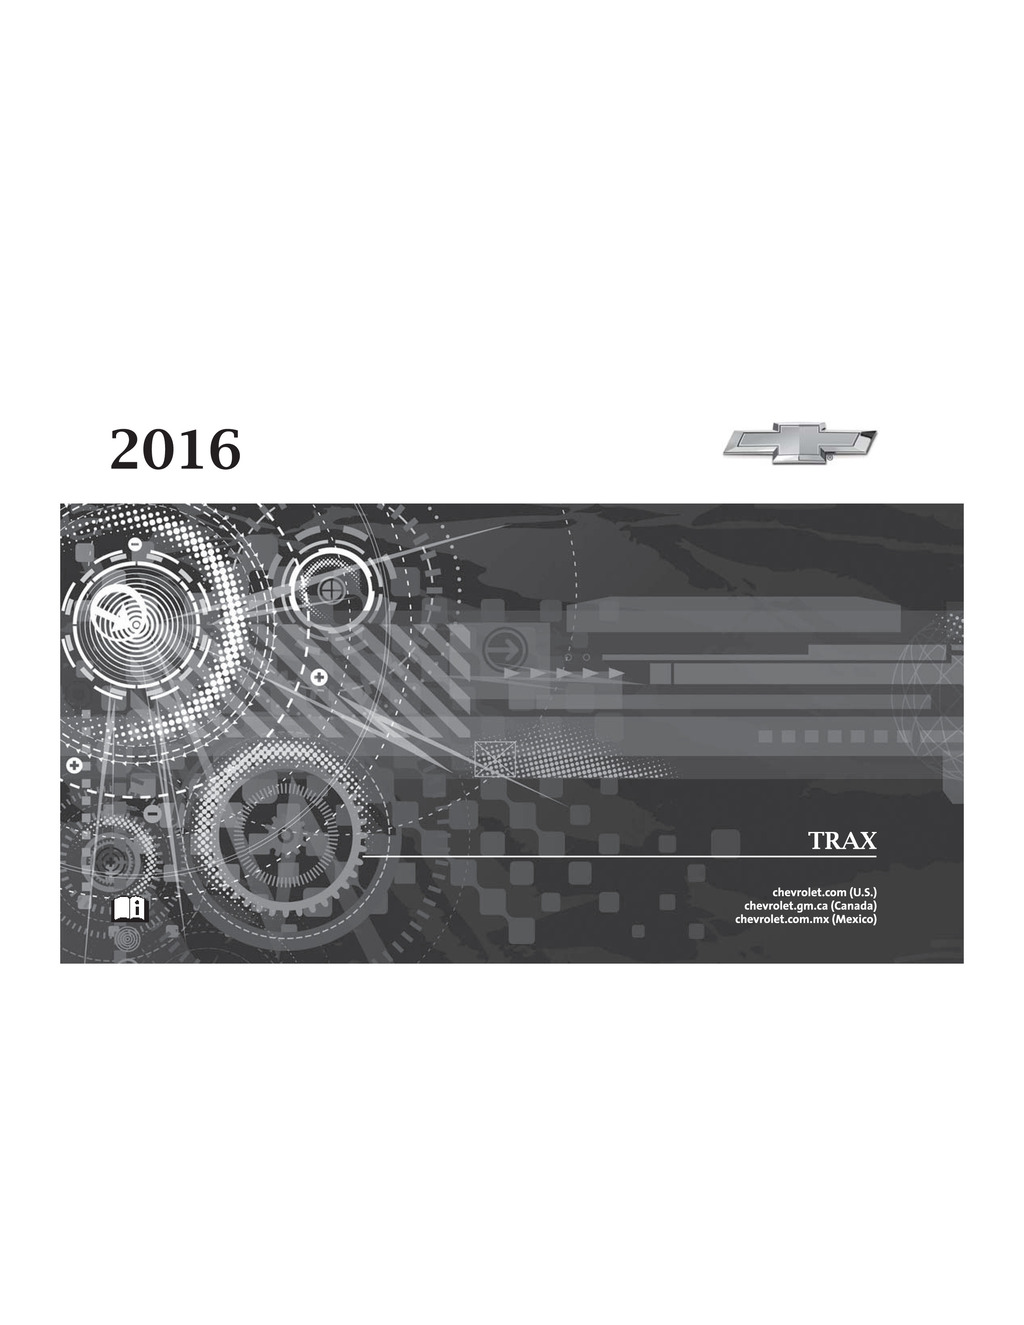 2016 Chevrolet Trax owners manual